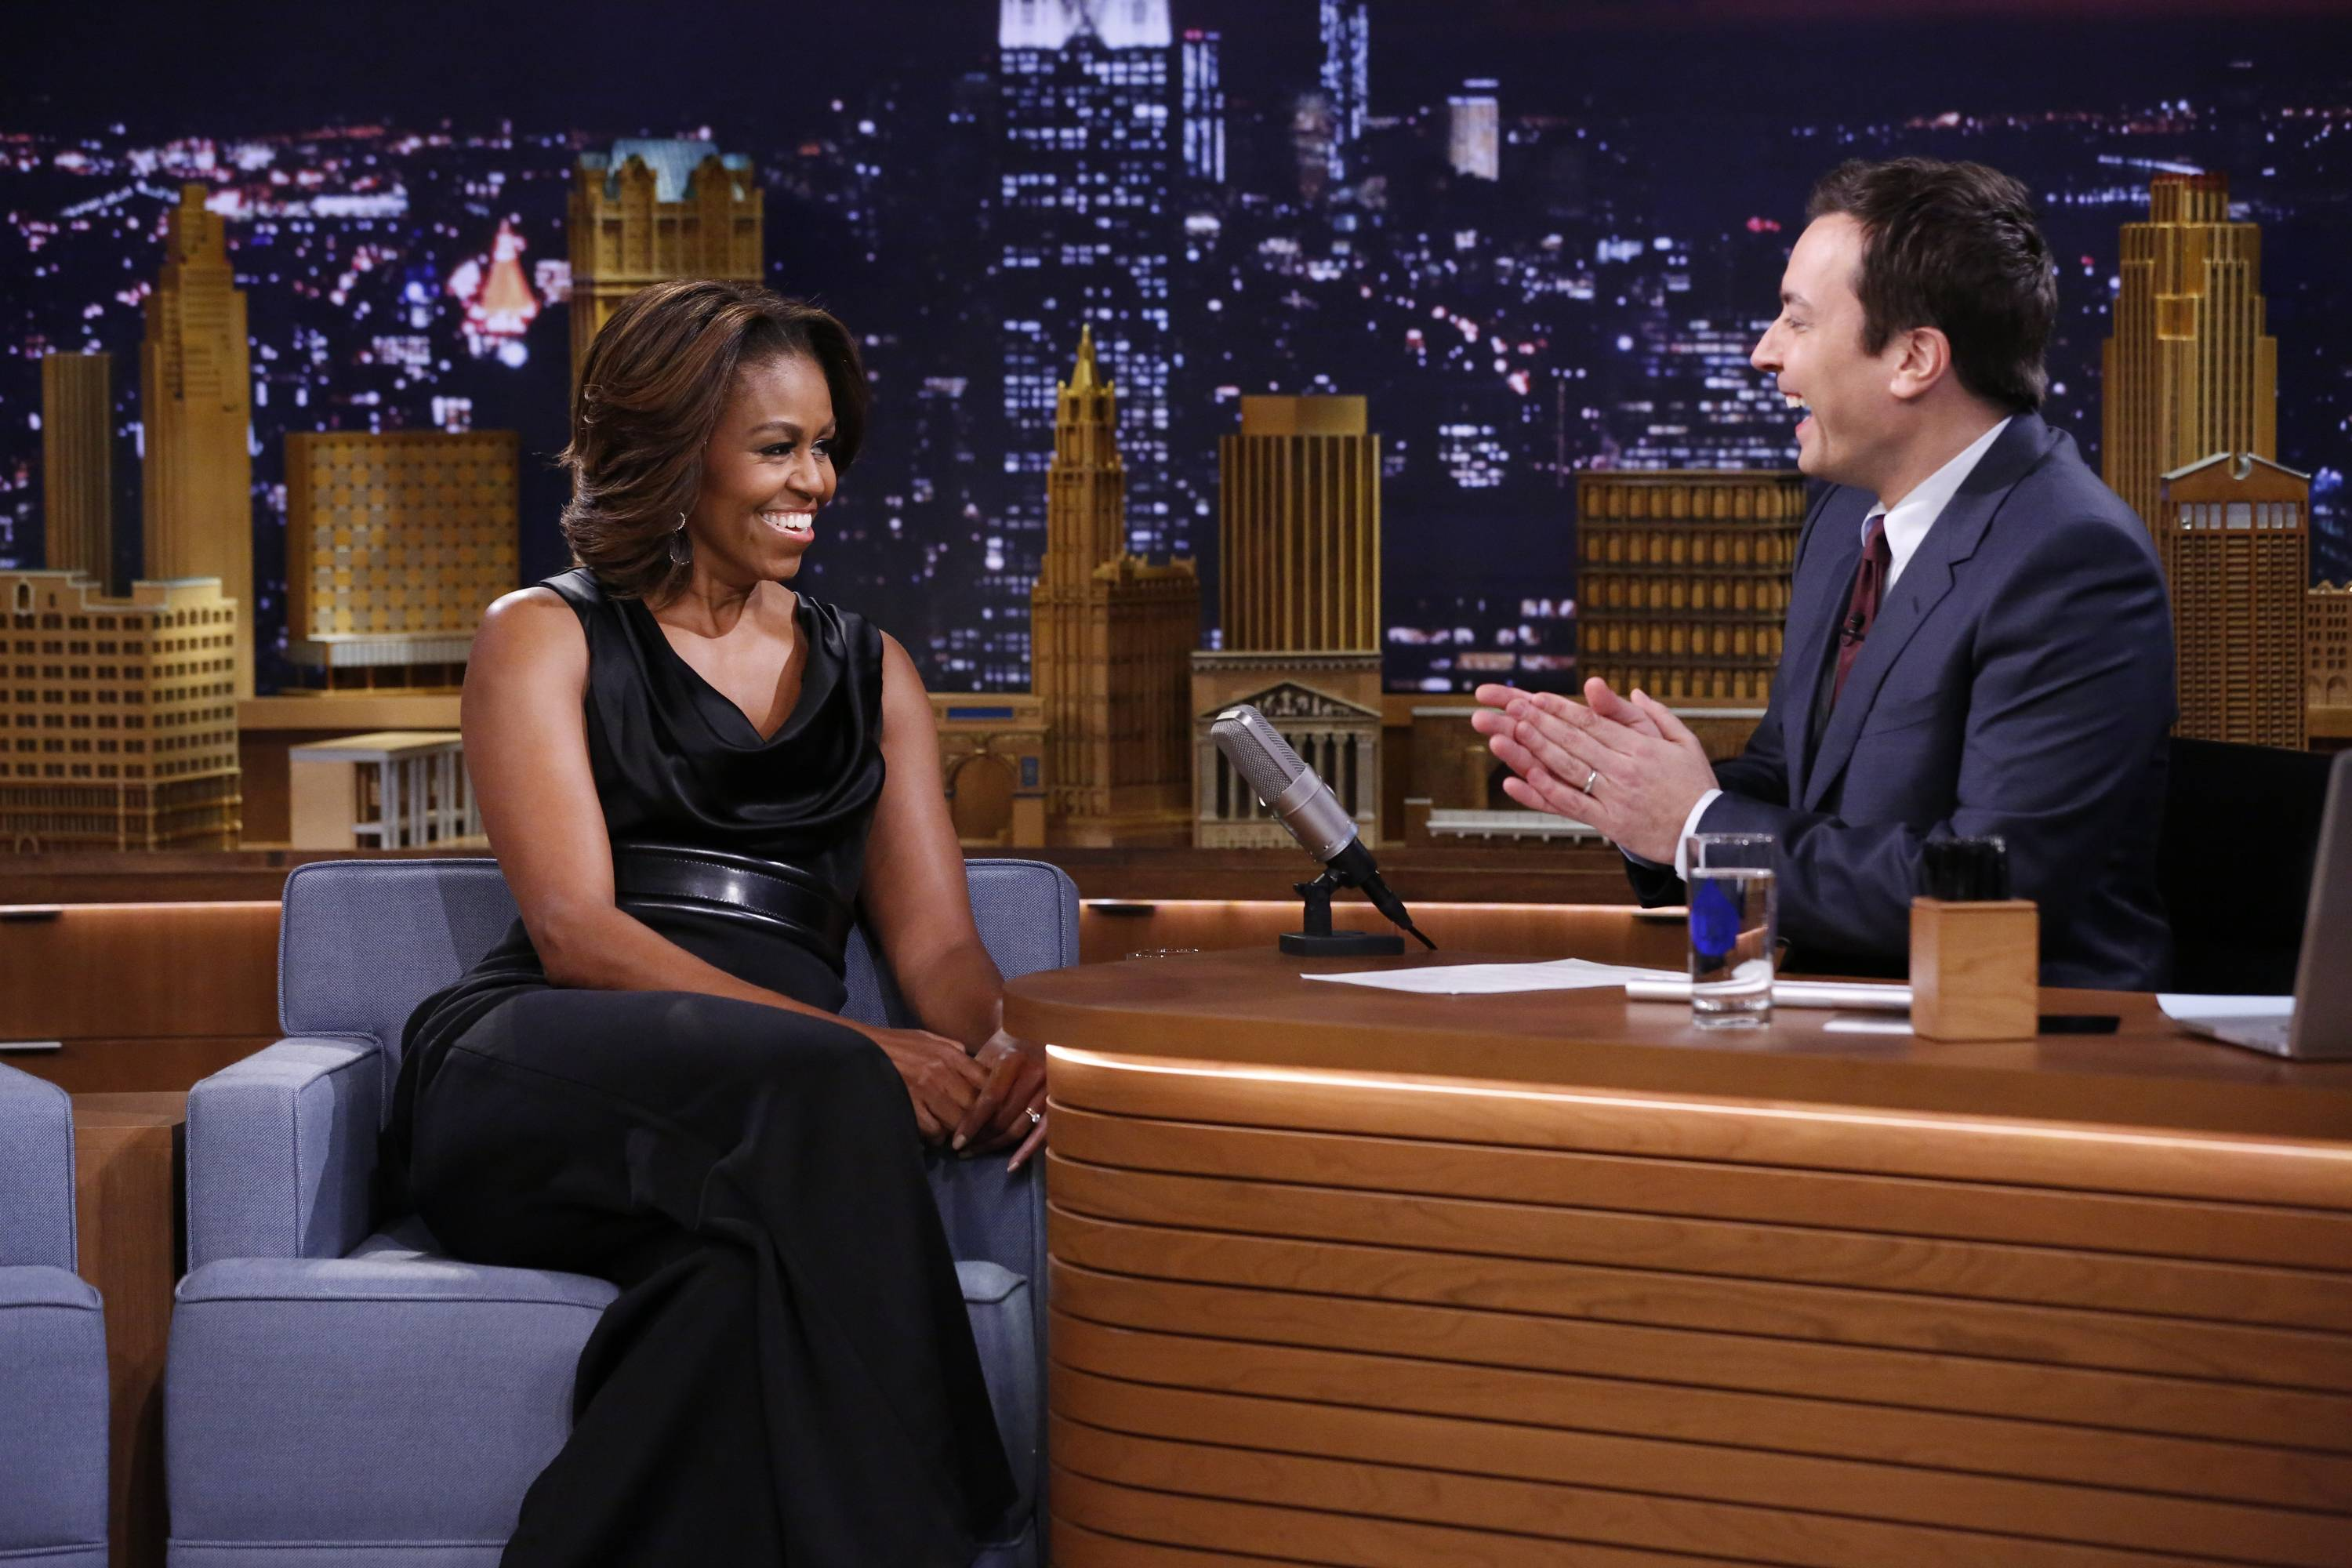 First lady Michelle Obama during an interview with host Jimmy Fallon on Thursday Feb. 20, 2014.